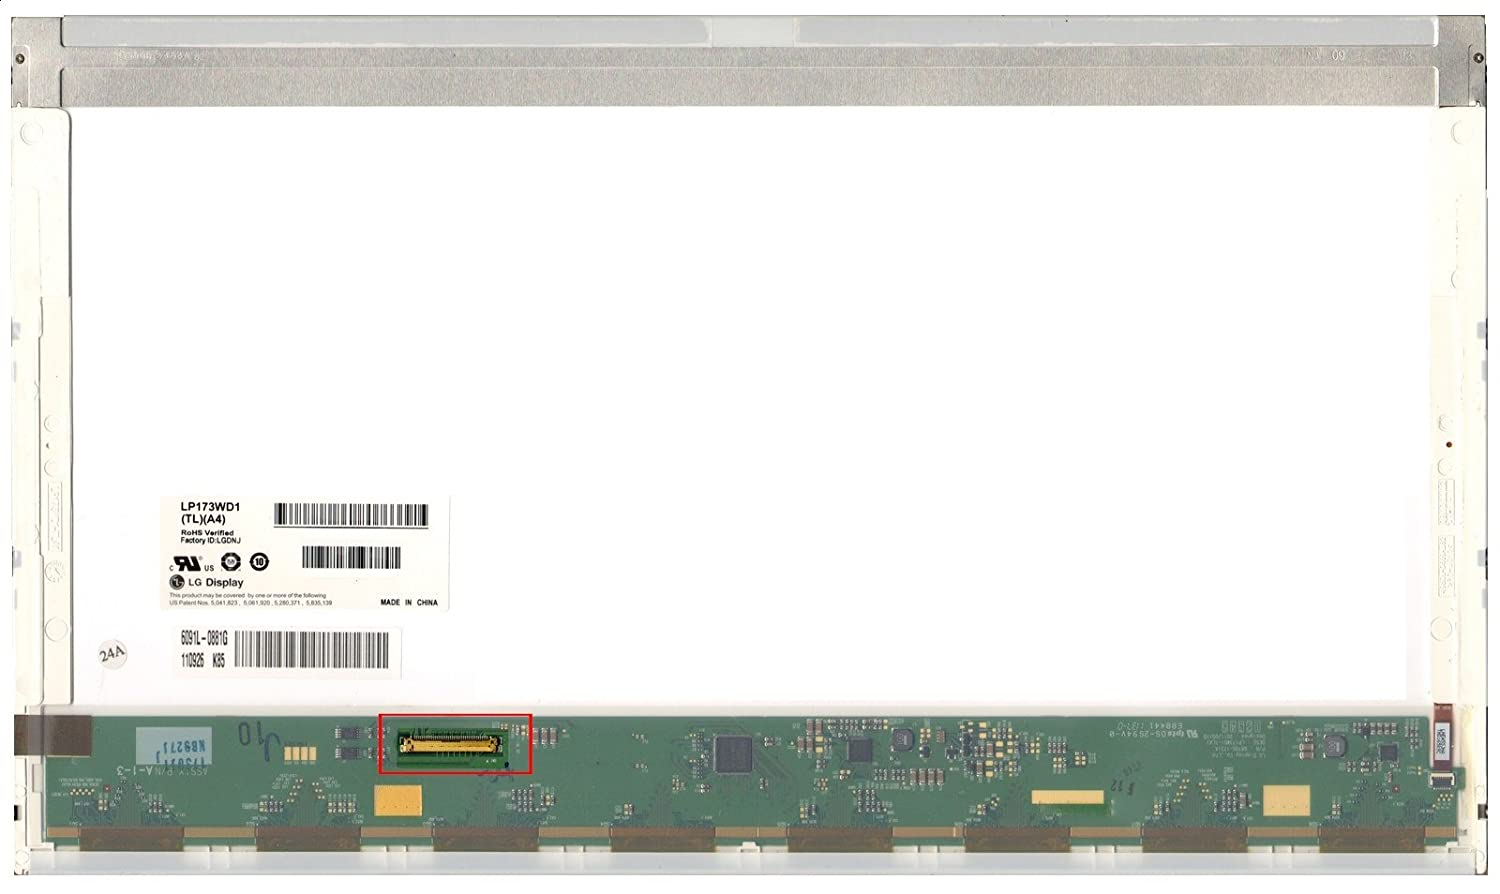 Toshiba Satellite C675d-s7109 Replacement LAPTOP LCD Screen 17.3' WXGA++ LED DIODE (Substitute Only. Not a laptop )